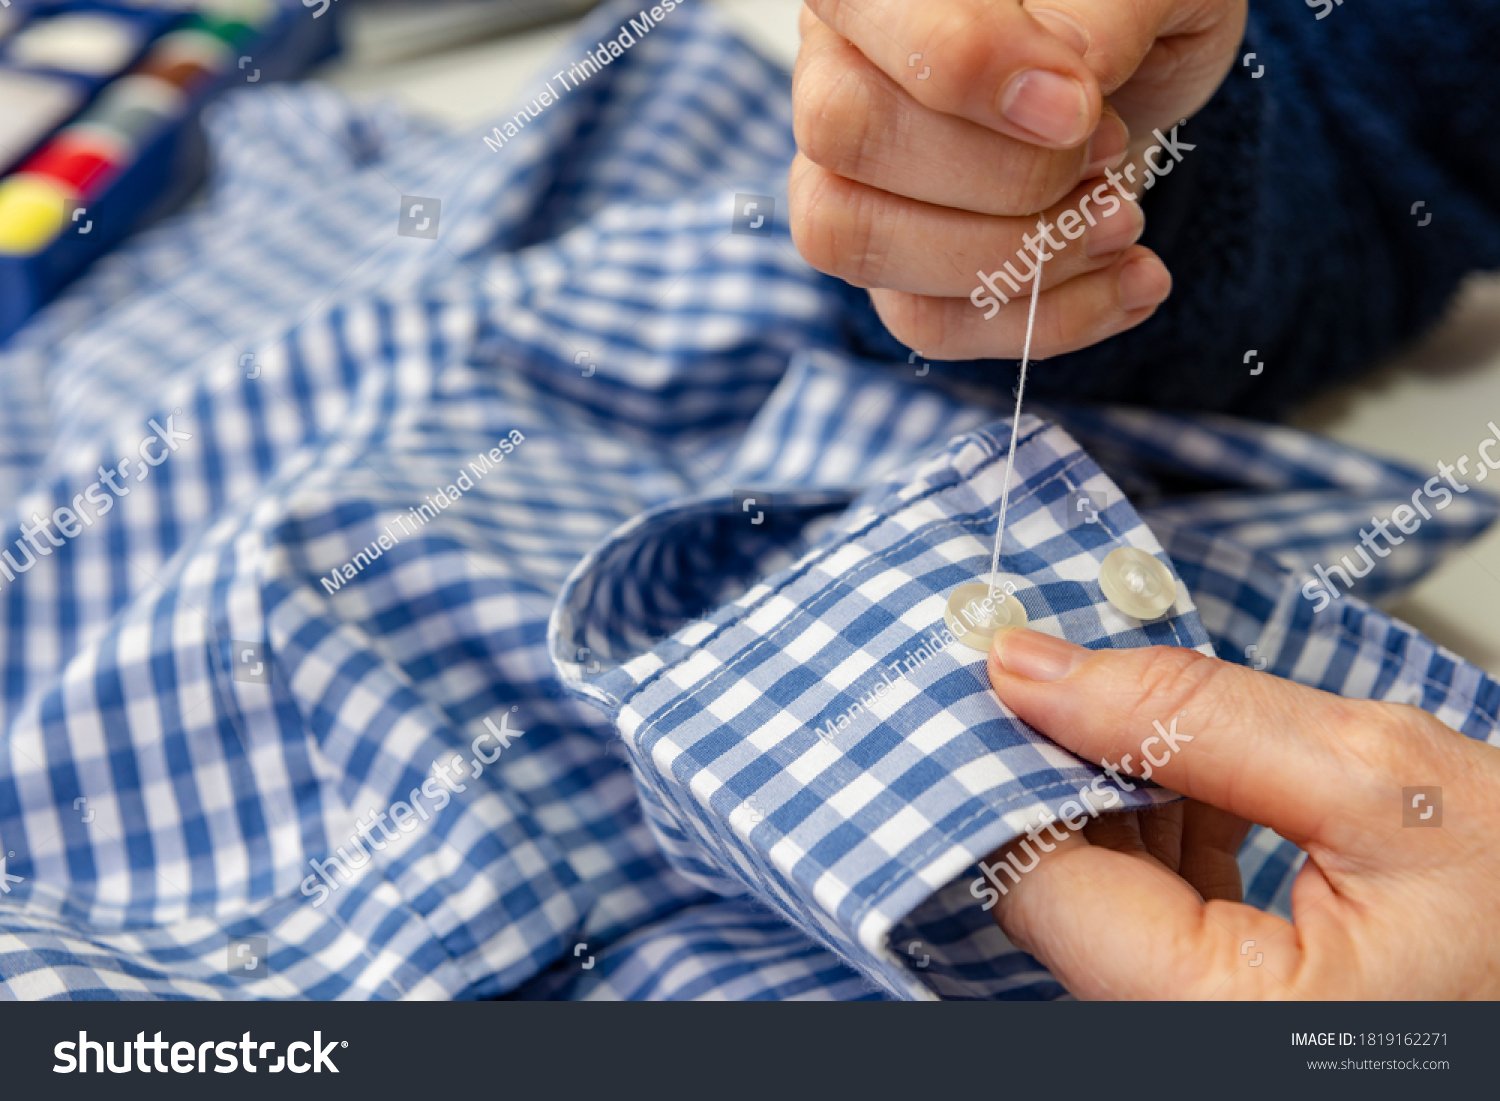 stock-photo-seamstress-sewing-a-button-t